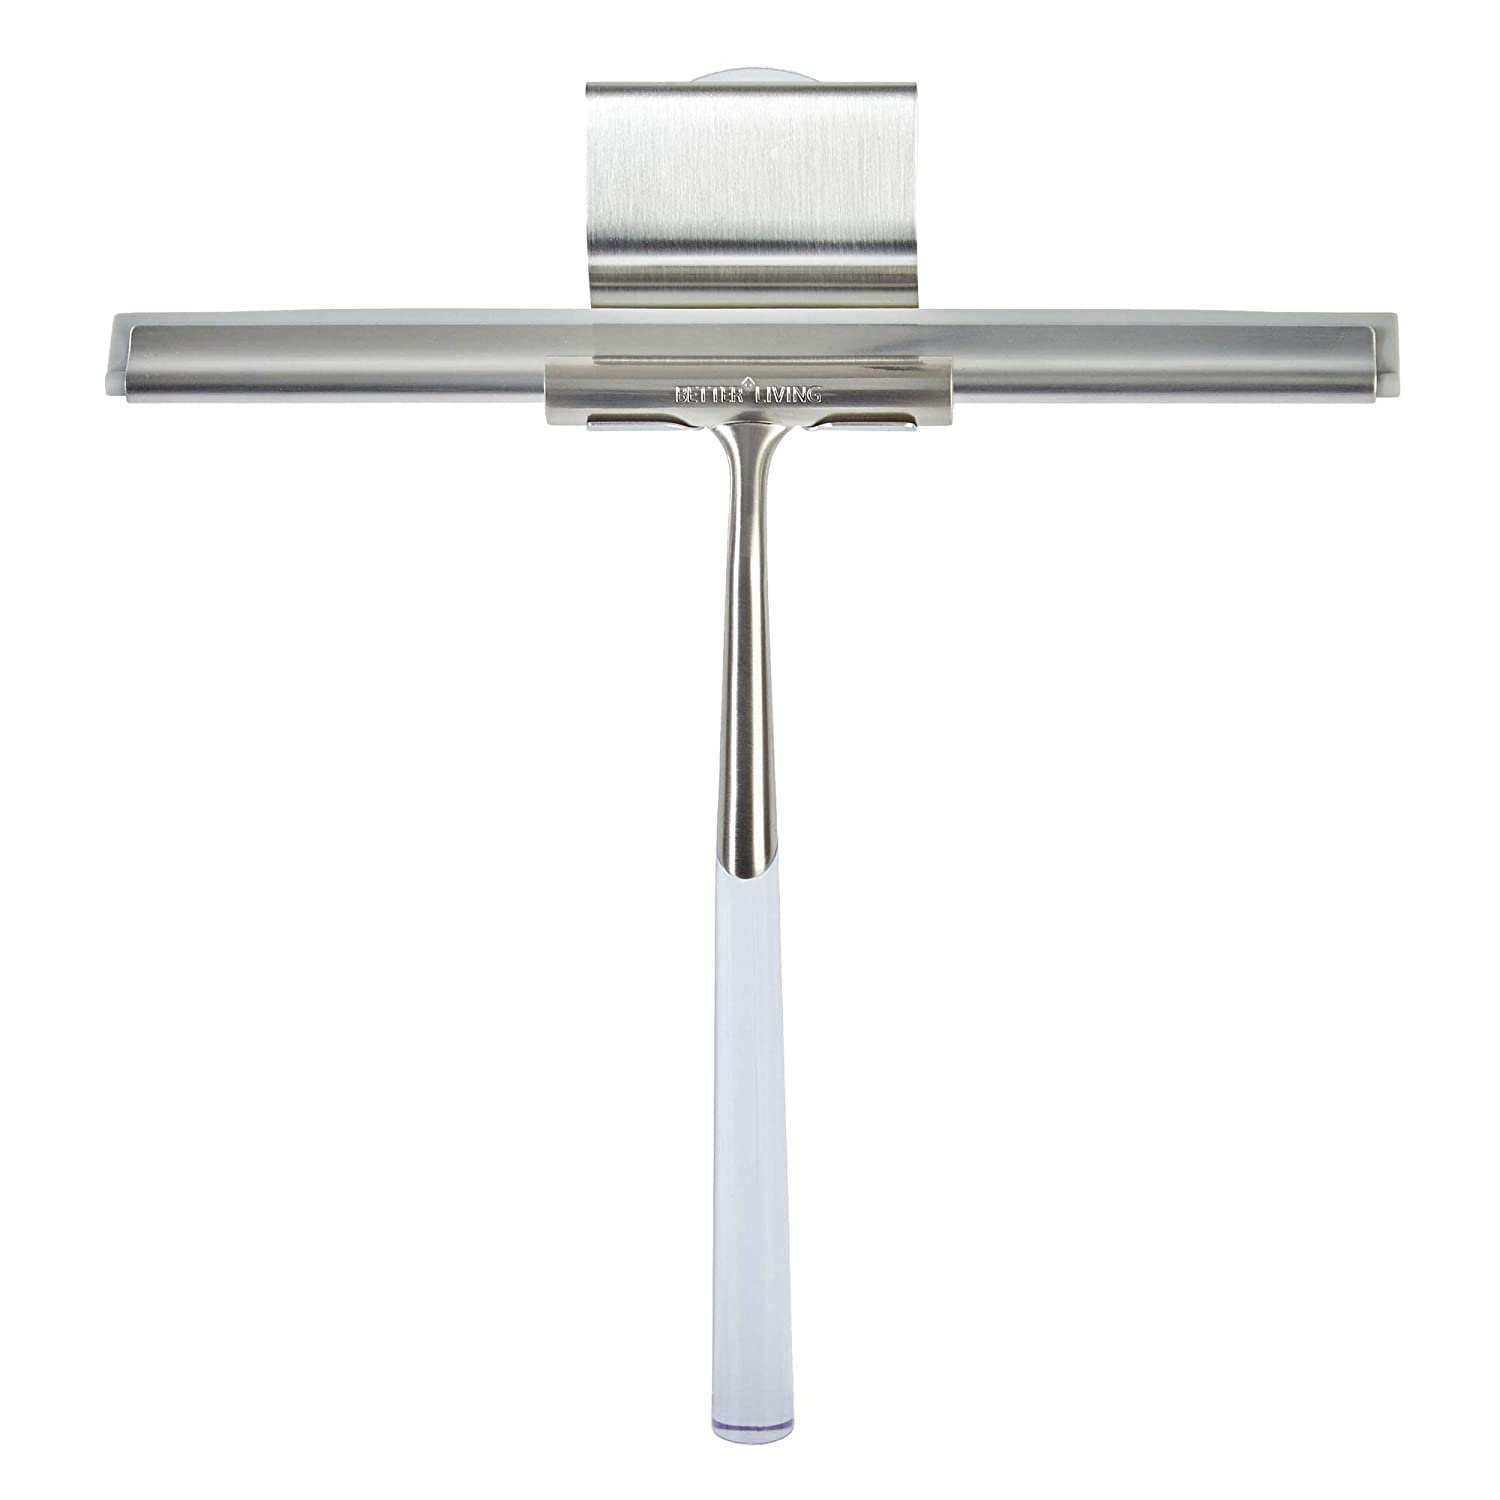 Better Living Products 18099 Linea Luxury Shower Squeegee, Brushed Nickel with Stainless Steel